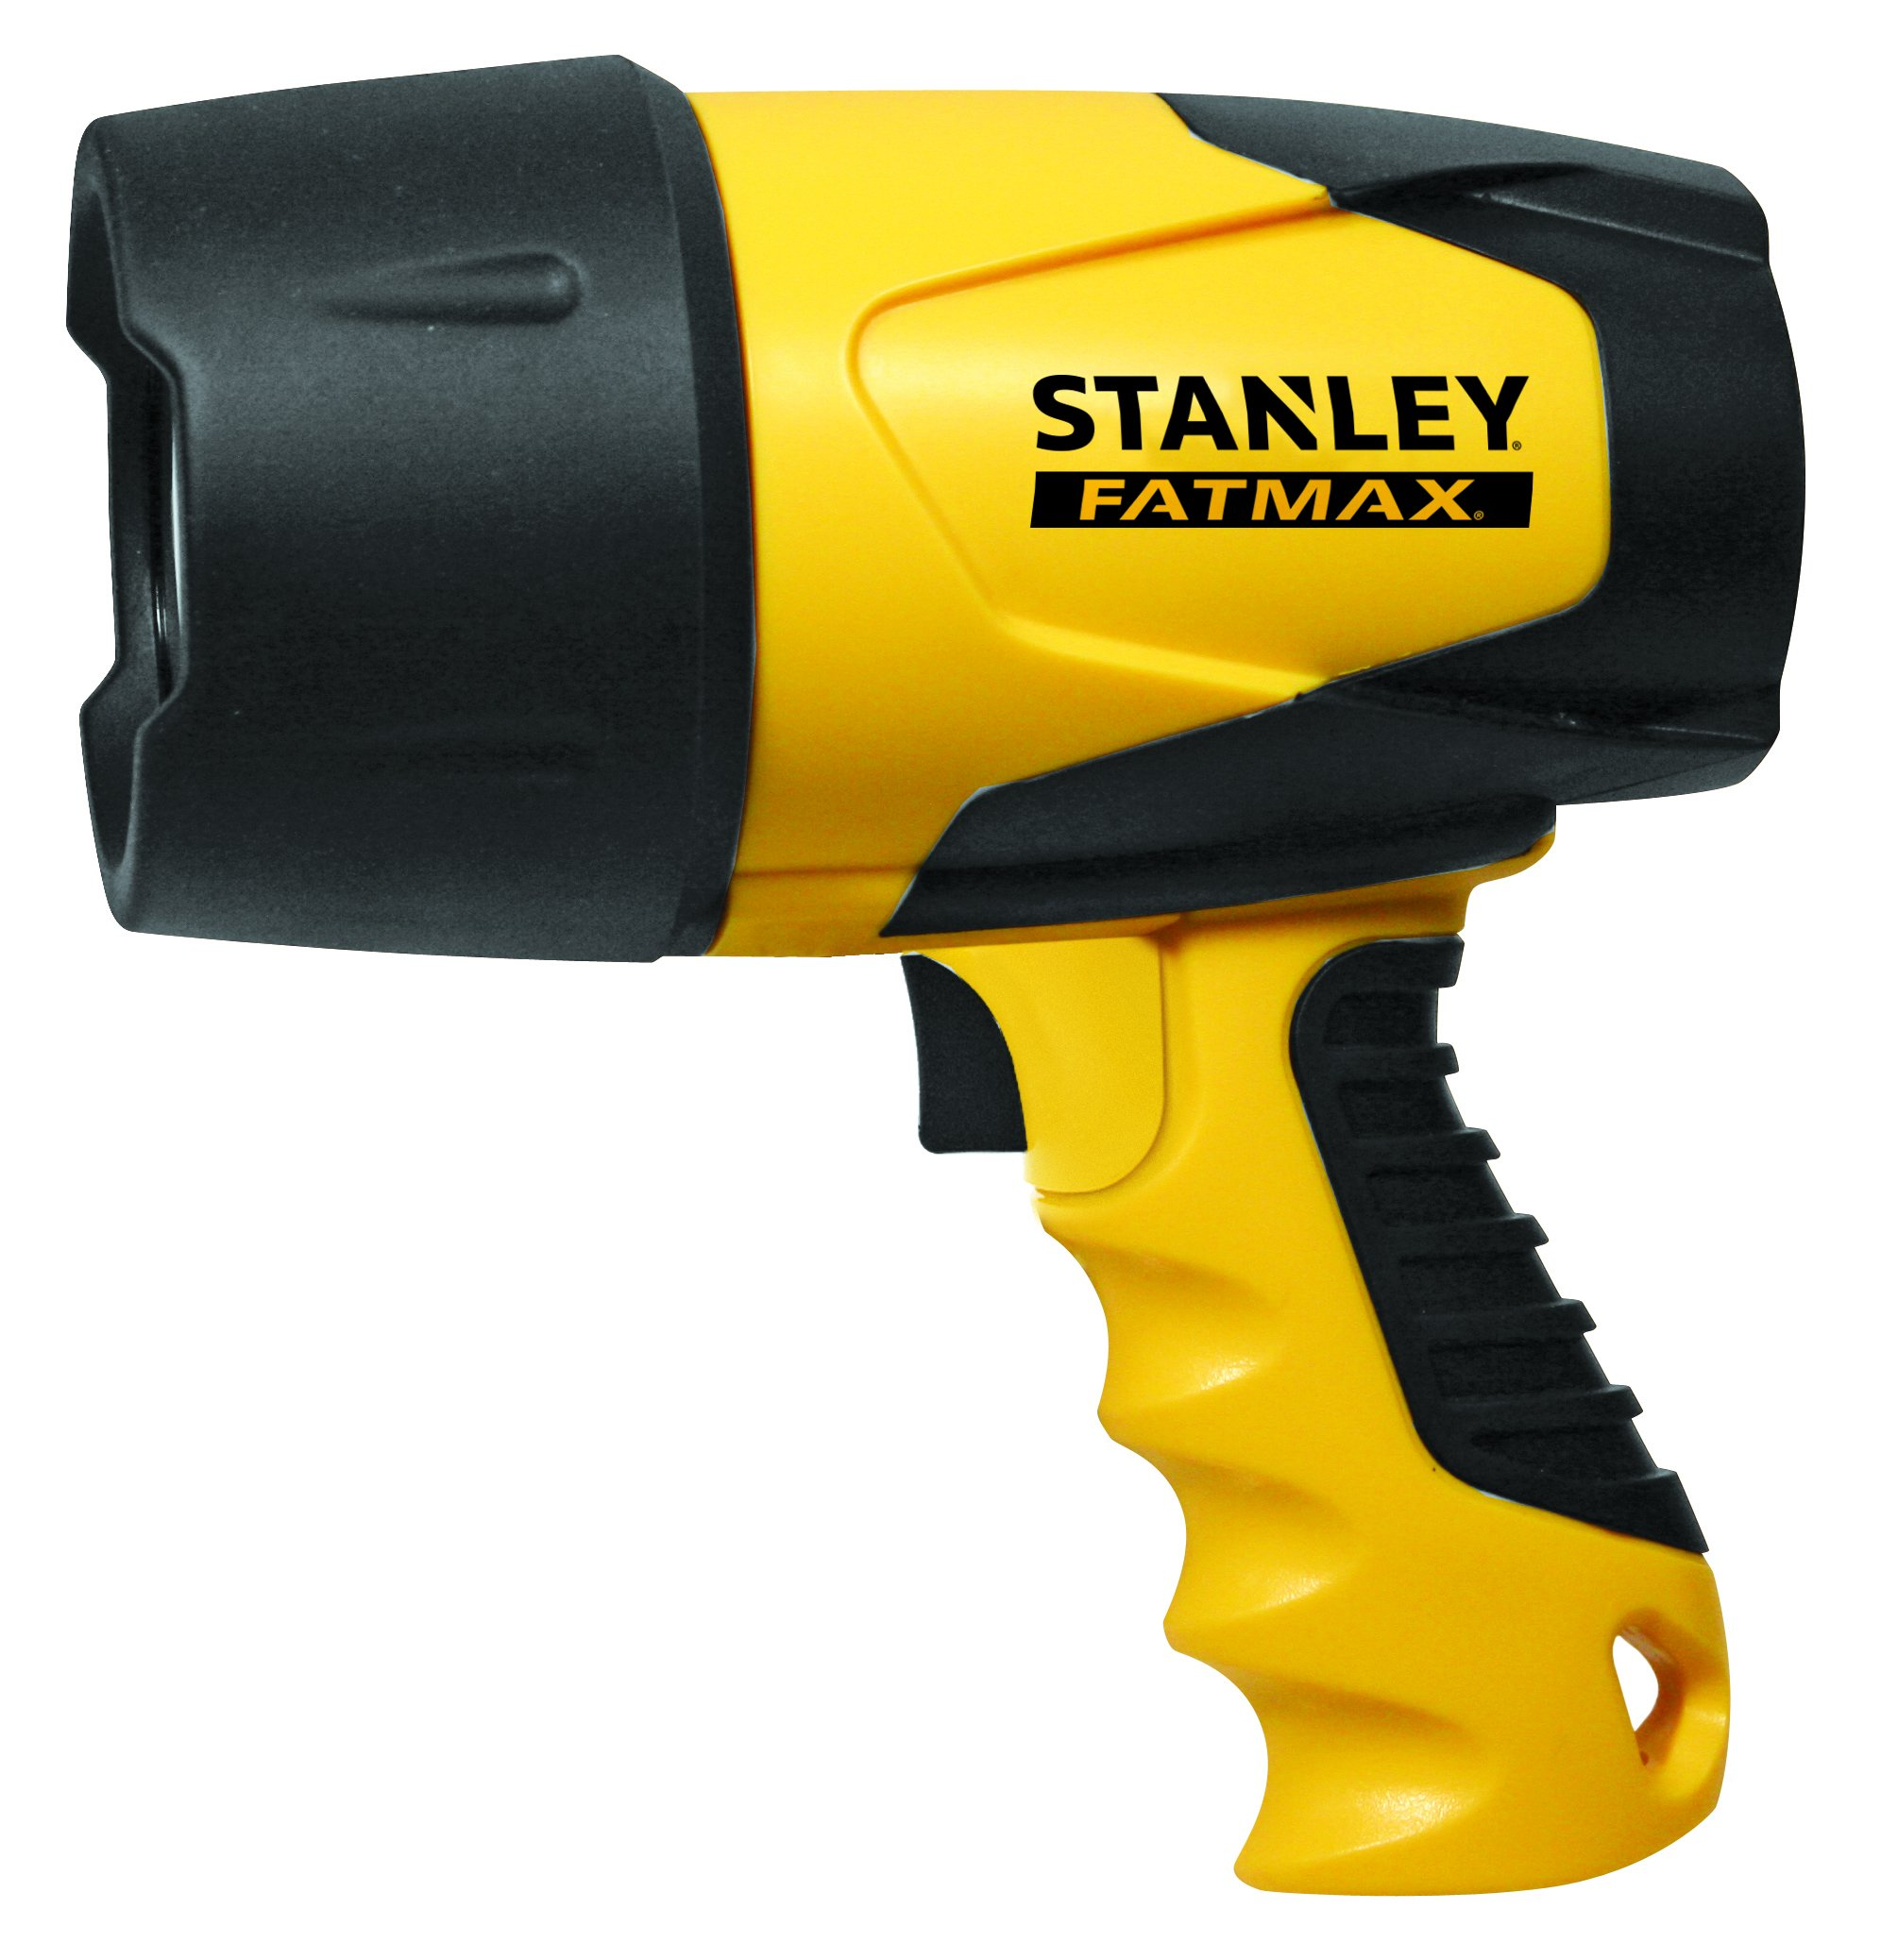 Stanley 5 Watt Led Rechargeable Spotlight: Amazon.com: STANLEY FATMAX SL10LEDS Rechargeable 2,200